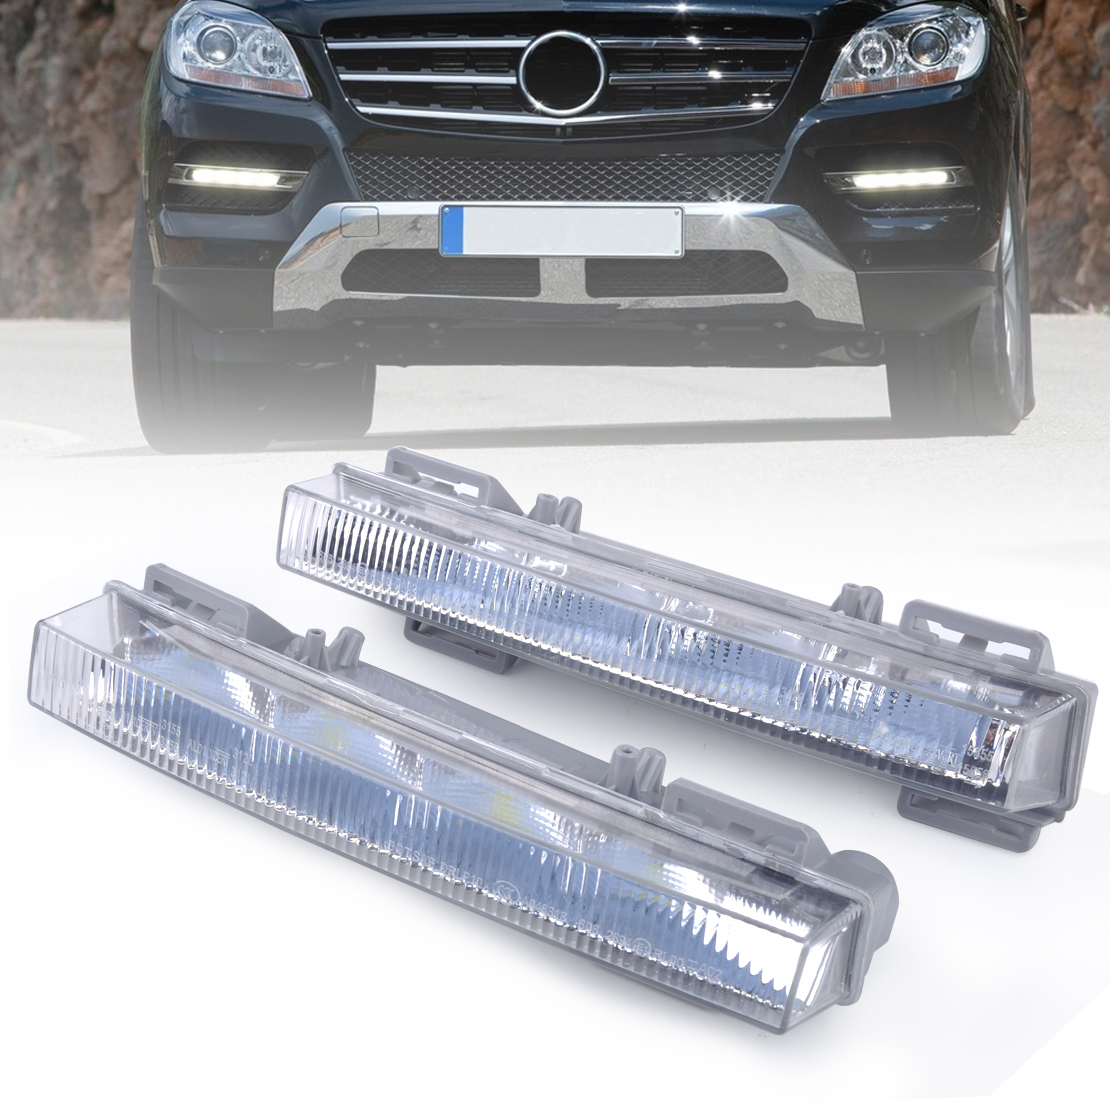 beler 2PCS LED Daytime Running Light Driving Lamp for Mercedes Benz W166 ML350 ML500 X204 GLK350 GLK250 2049065401 2049065501 door mirror turn signal light for mercedes benz w163 ml270 ml230 ml320 ml400 ml350 ml500 ml430 ml55